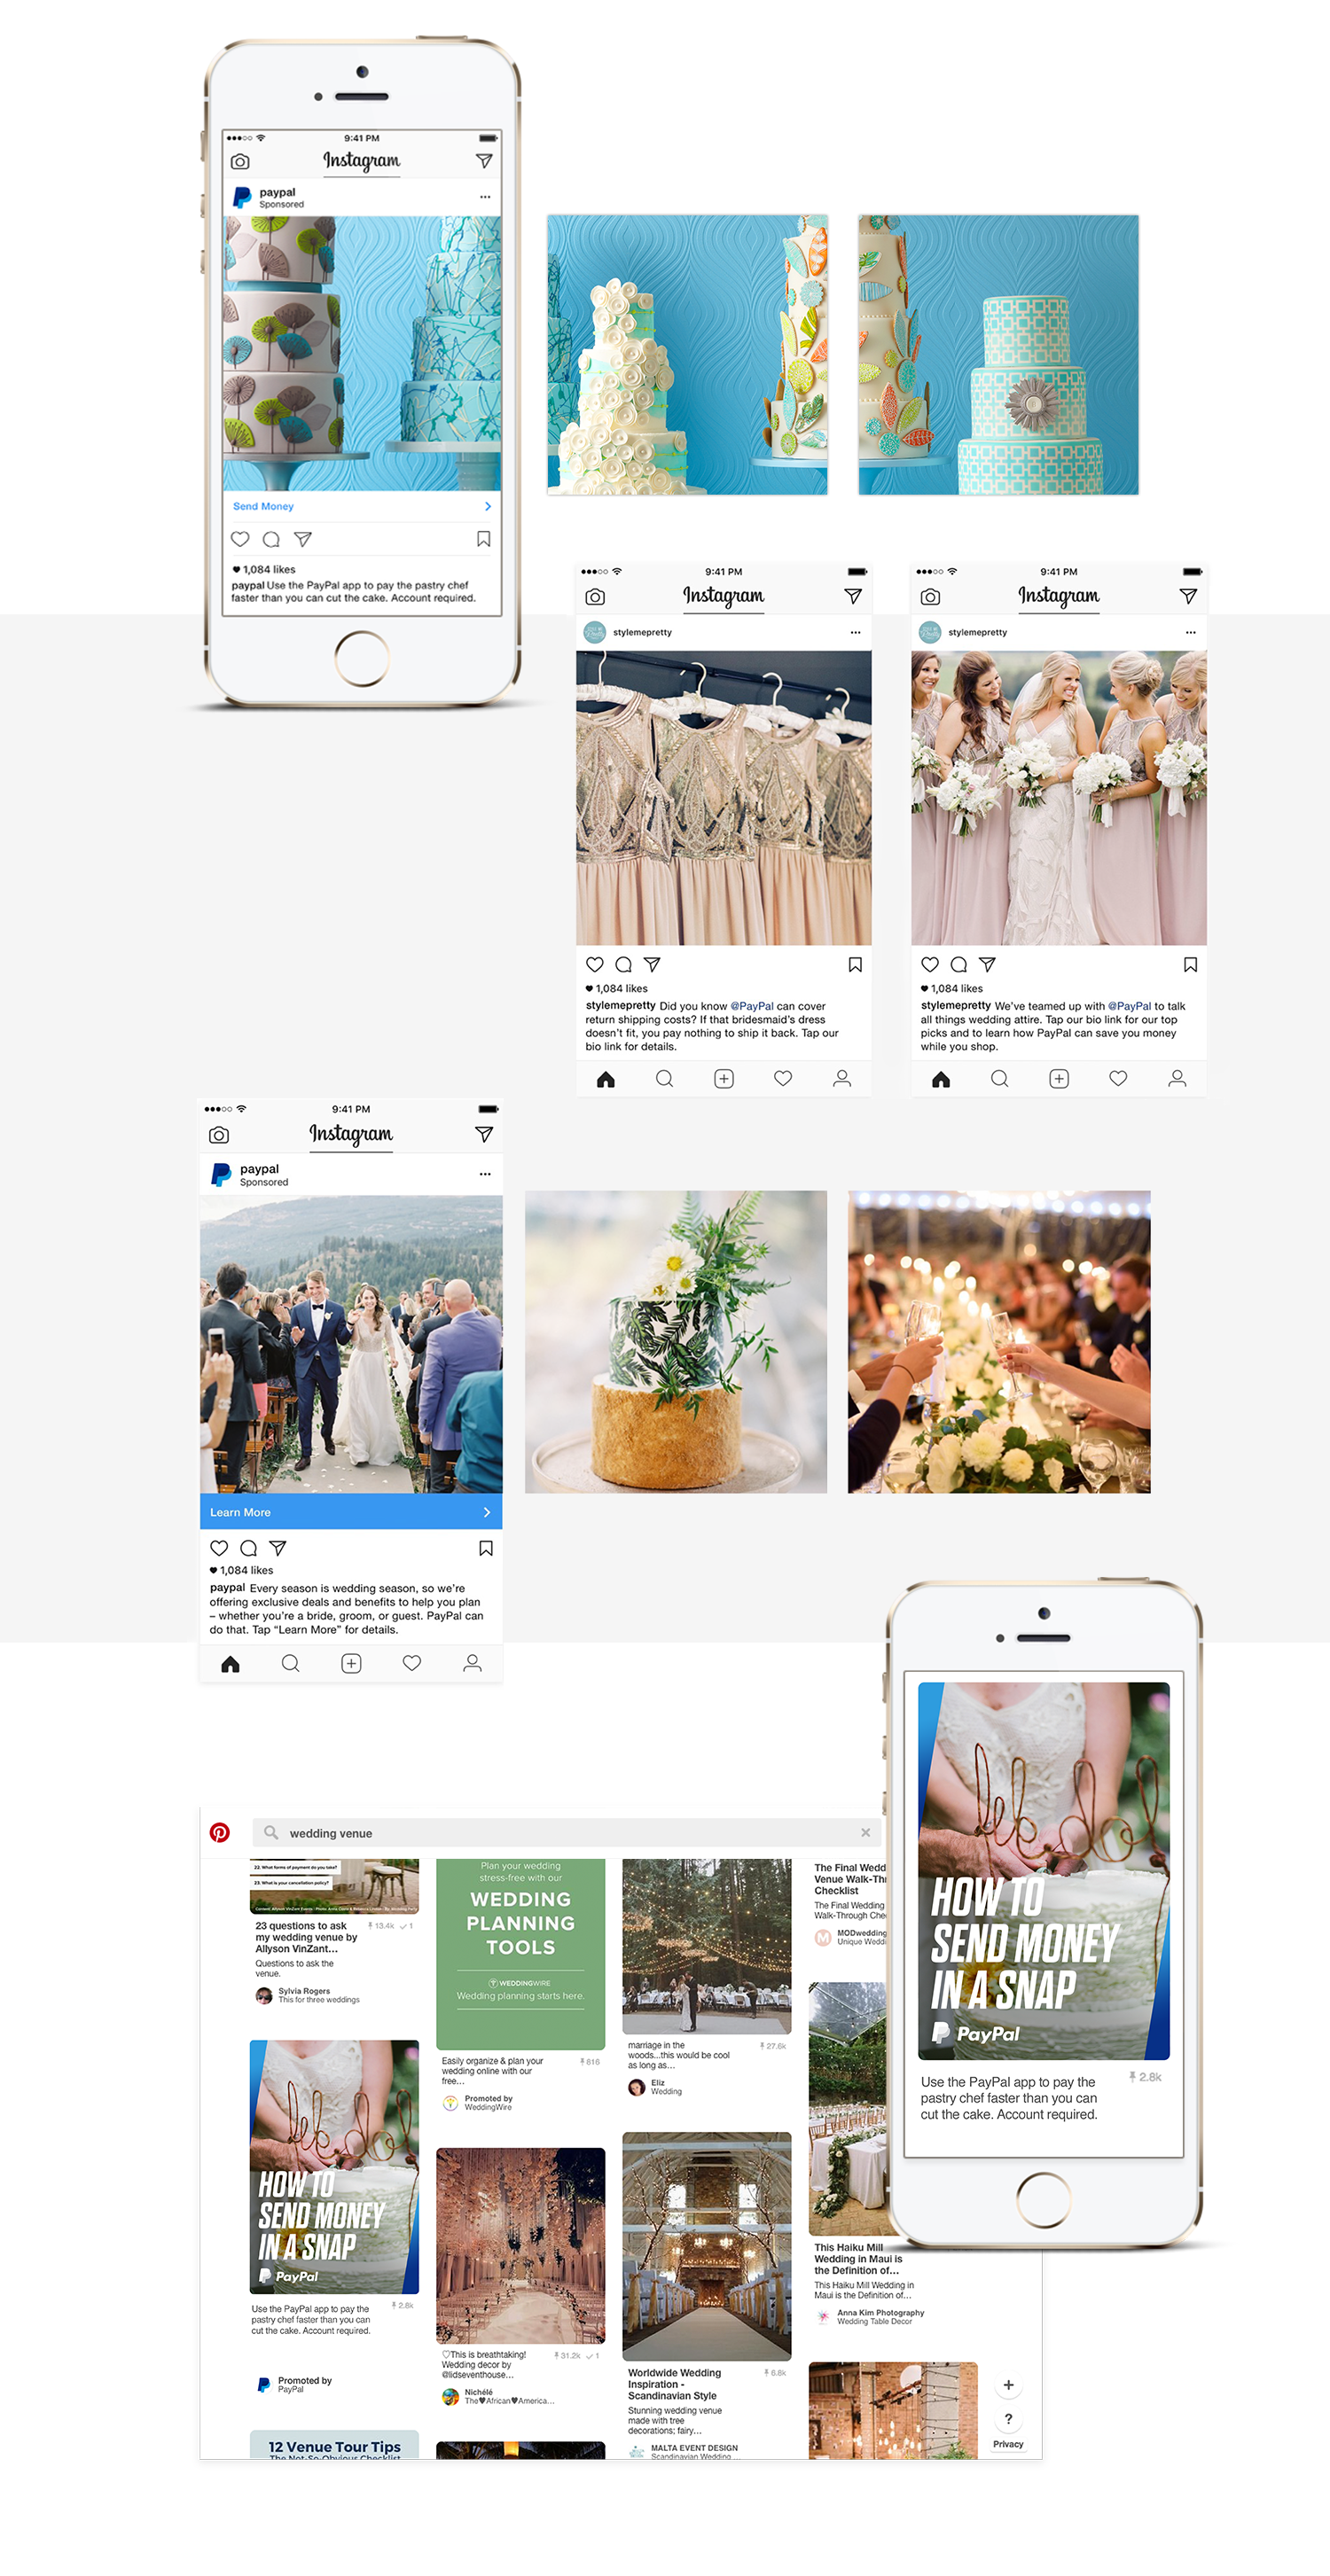 PP_Weddings_Social_Layout.png